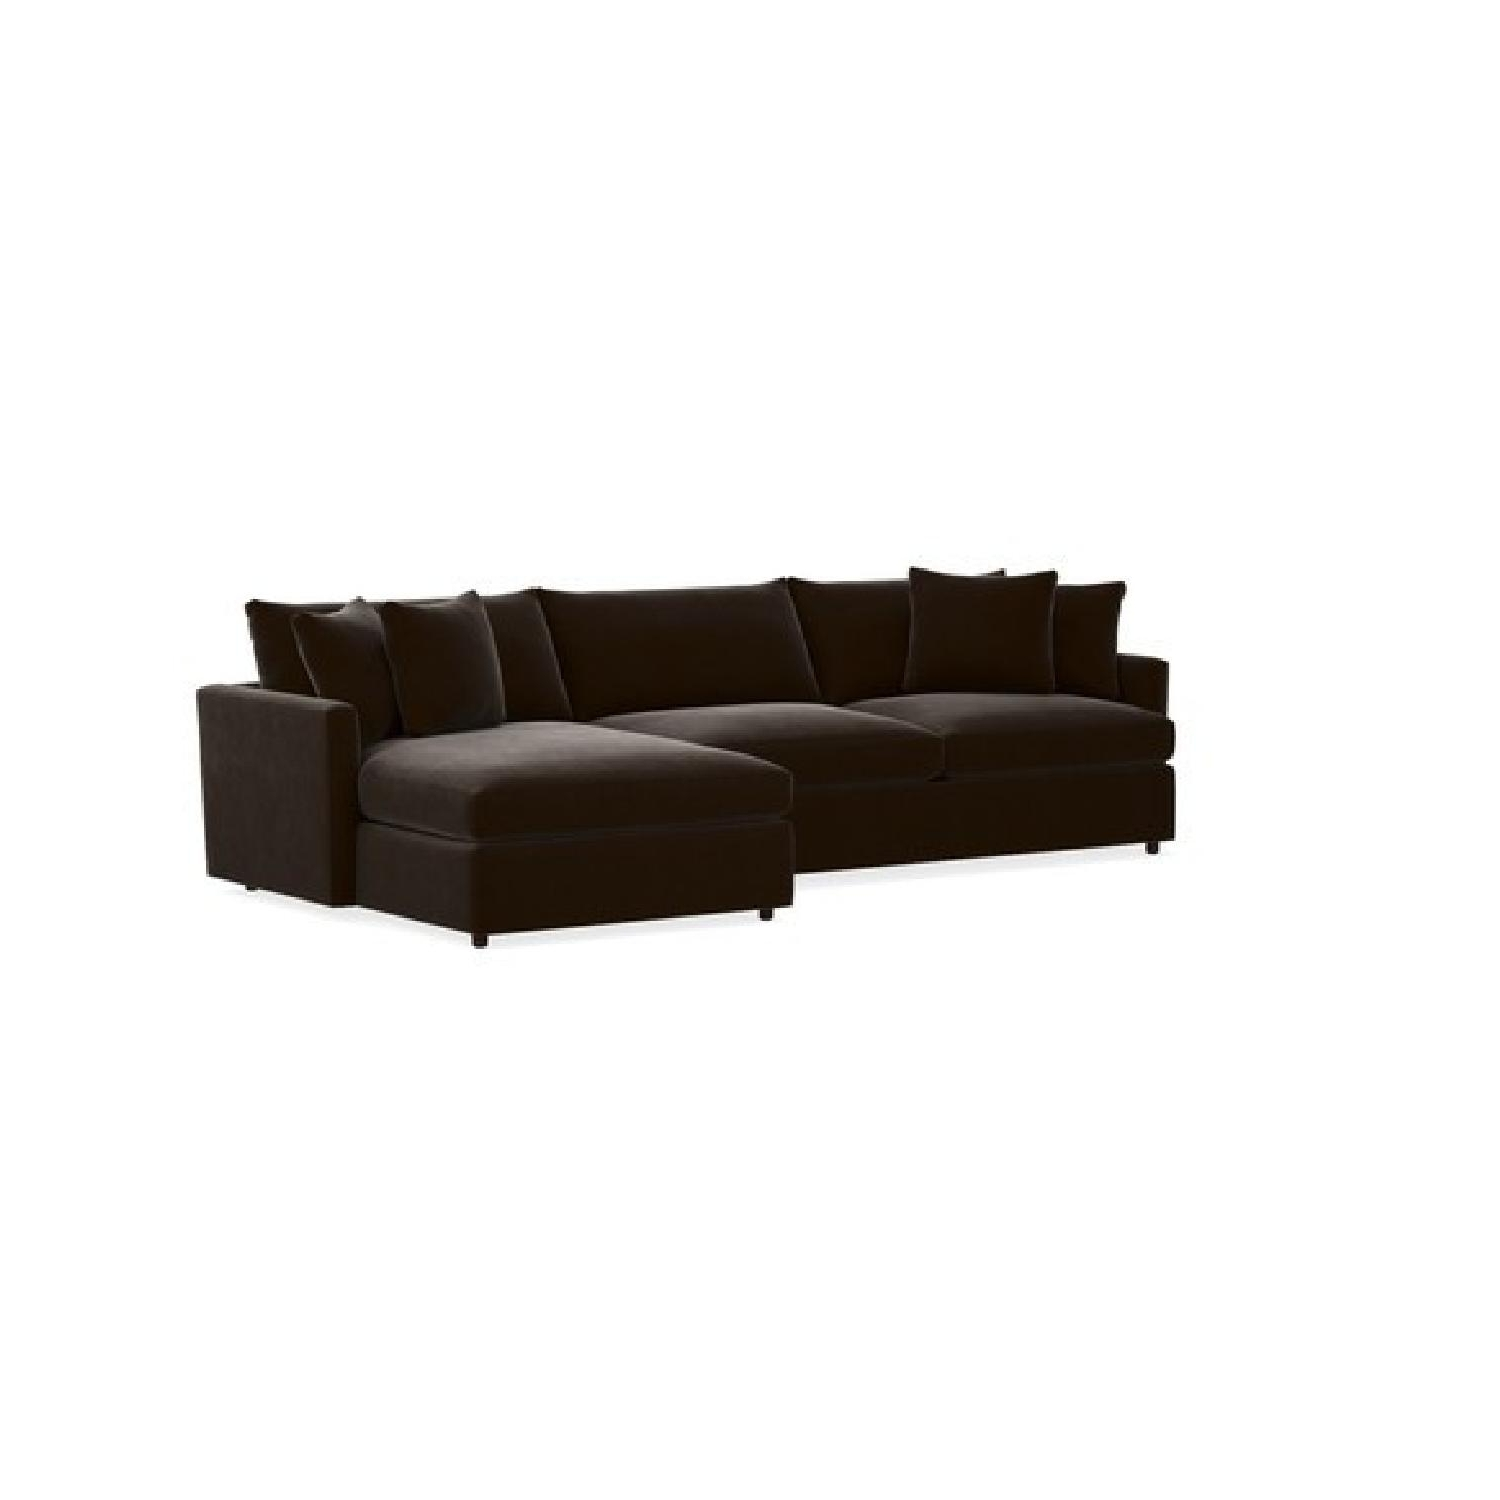 Kolyorove Throughout Sectional Sofas At Sam's Club (Gallery 16 of 20)